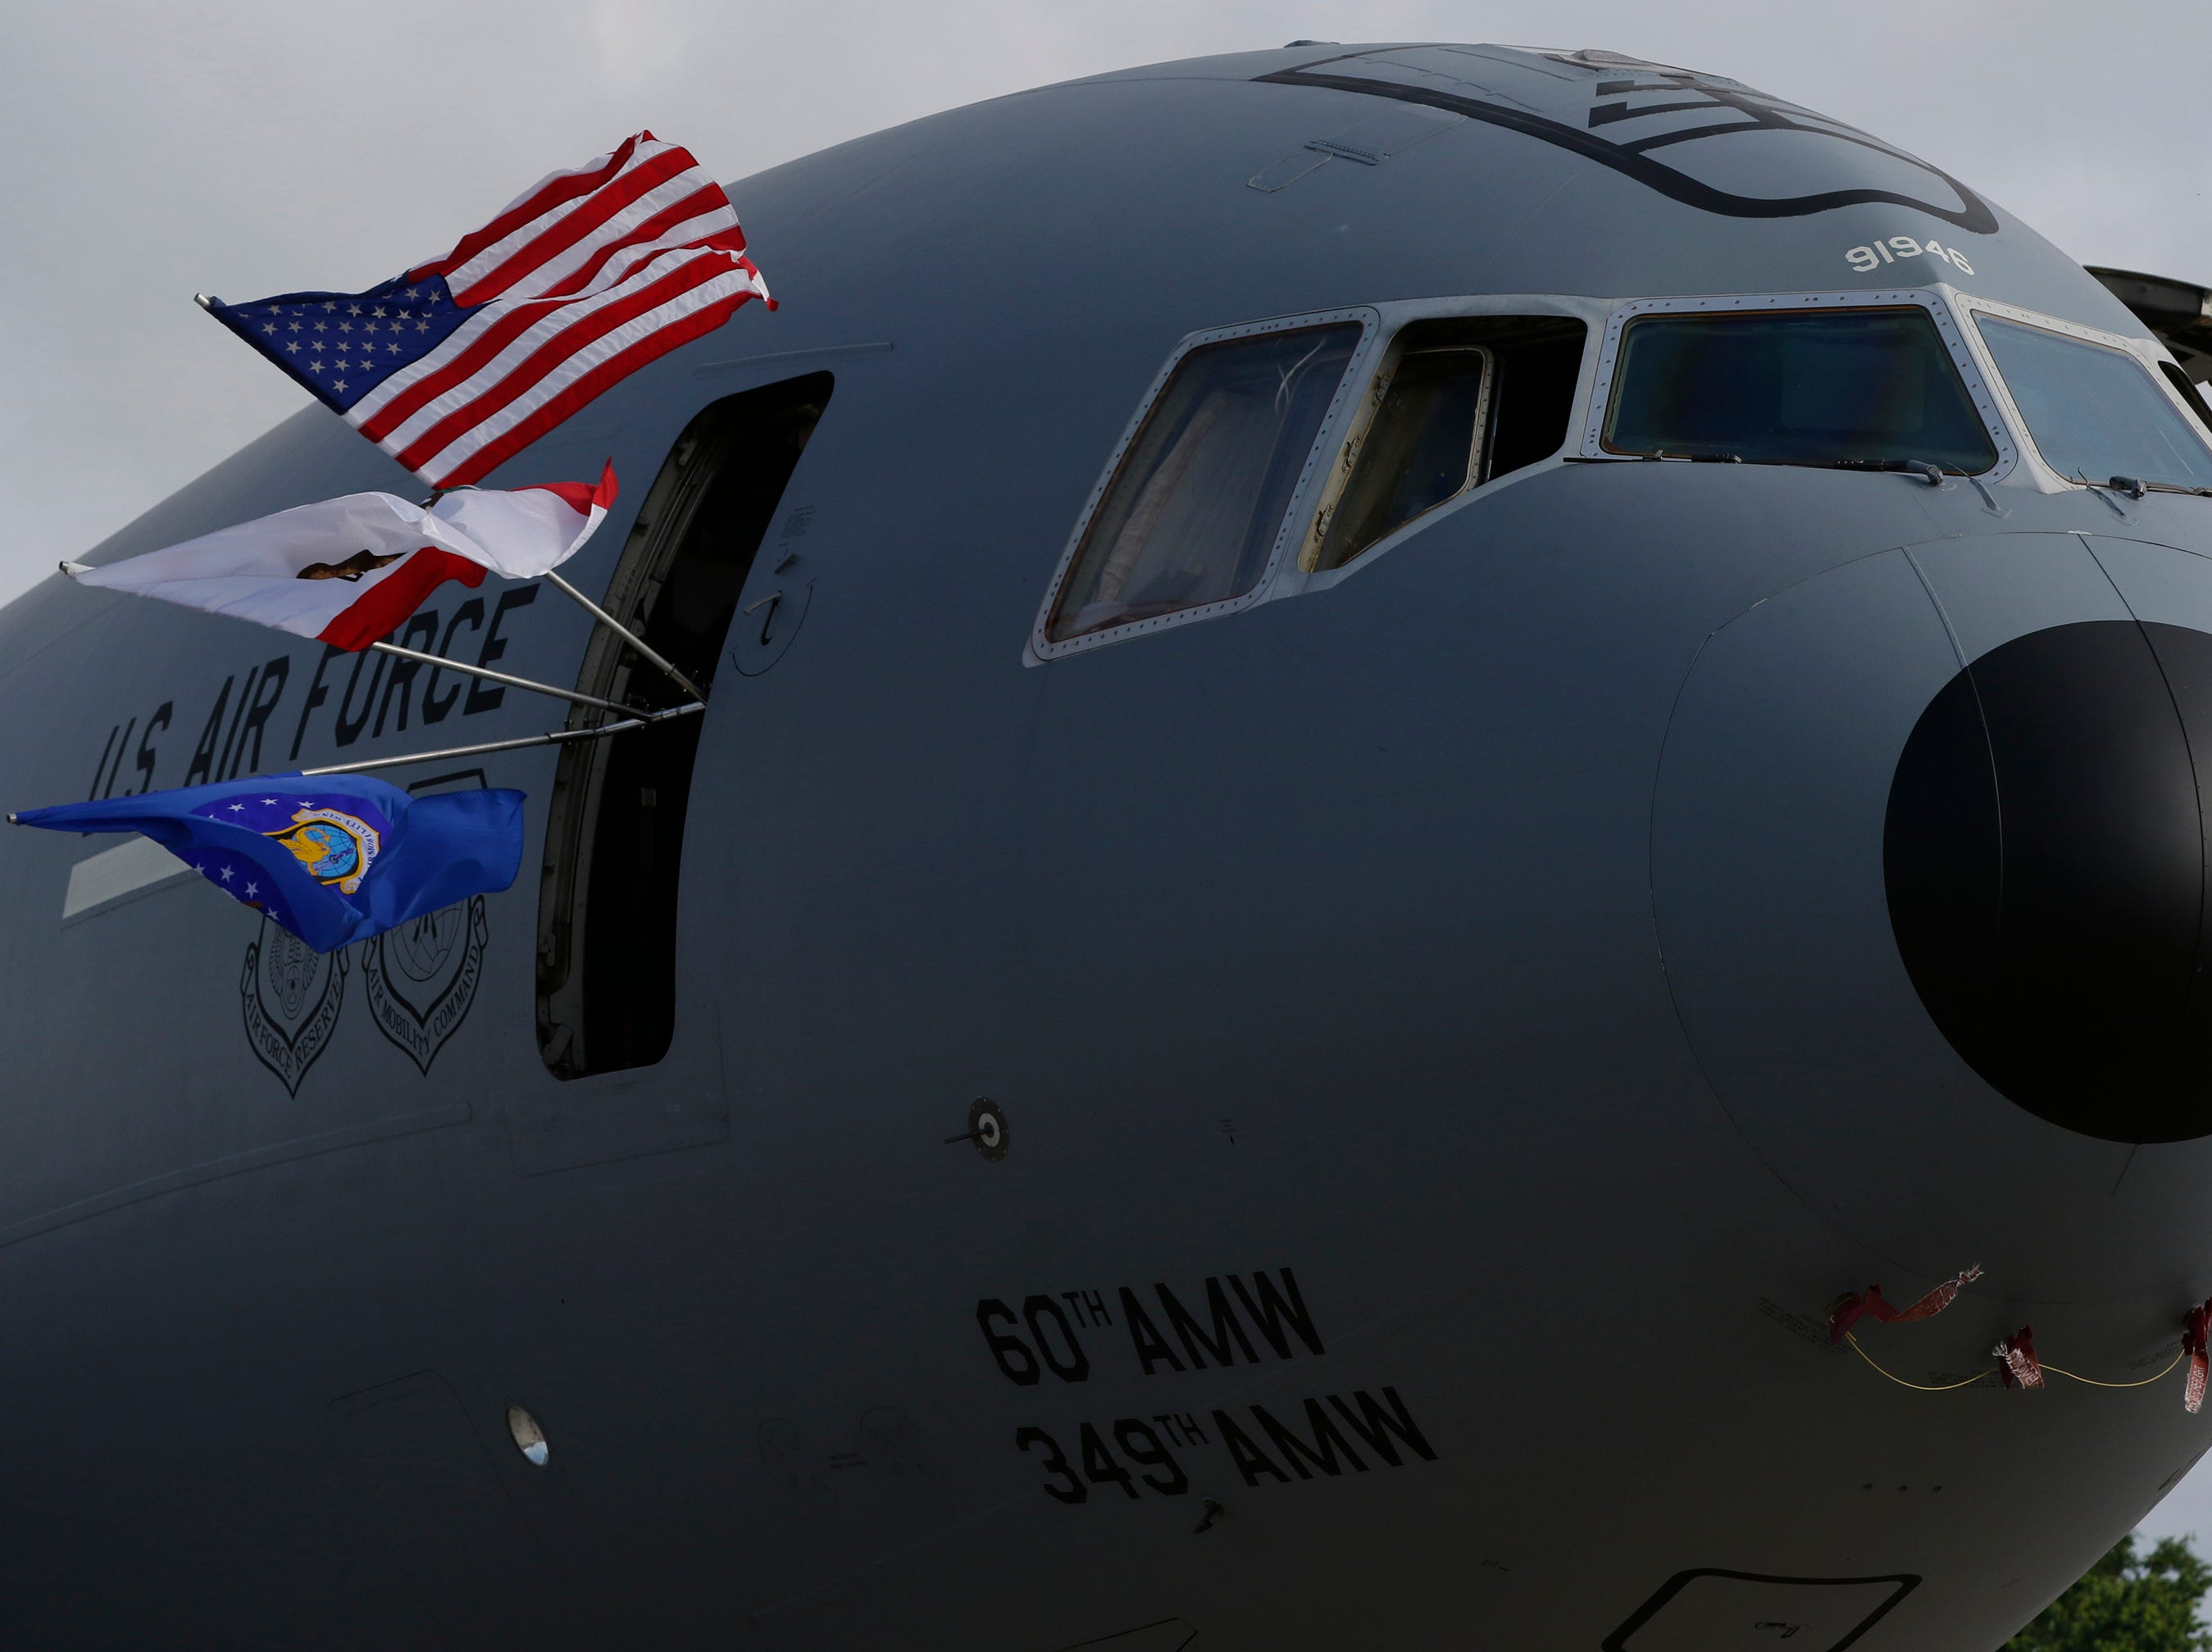 The McDonnell Douglas KC-10 Extender is on display on Boeing Plaza, Friday, July 27, 2018, in Oshkosh, Wis.  The 66th annual Experimental Aircraft Association Fly-In Convention, AirVenture 2018 draws over 500,000 people and over 10,000 planes from more than 70 nations annually to the area.  The convention runs through July 29.Joe Sienkiewicz/USA Today NETWORK-Wisconsin